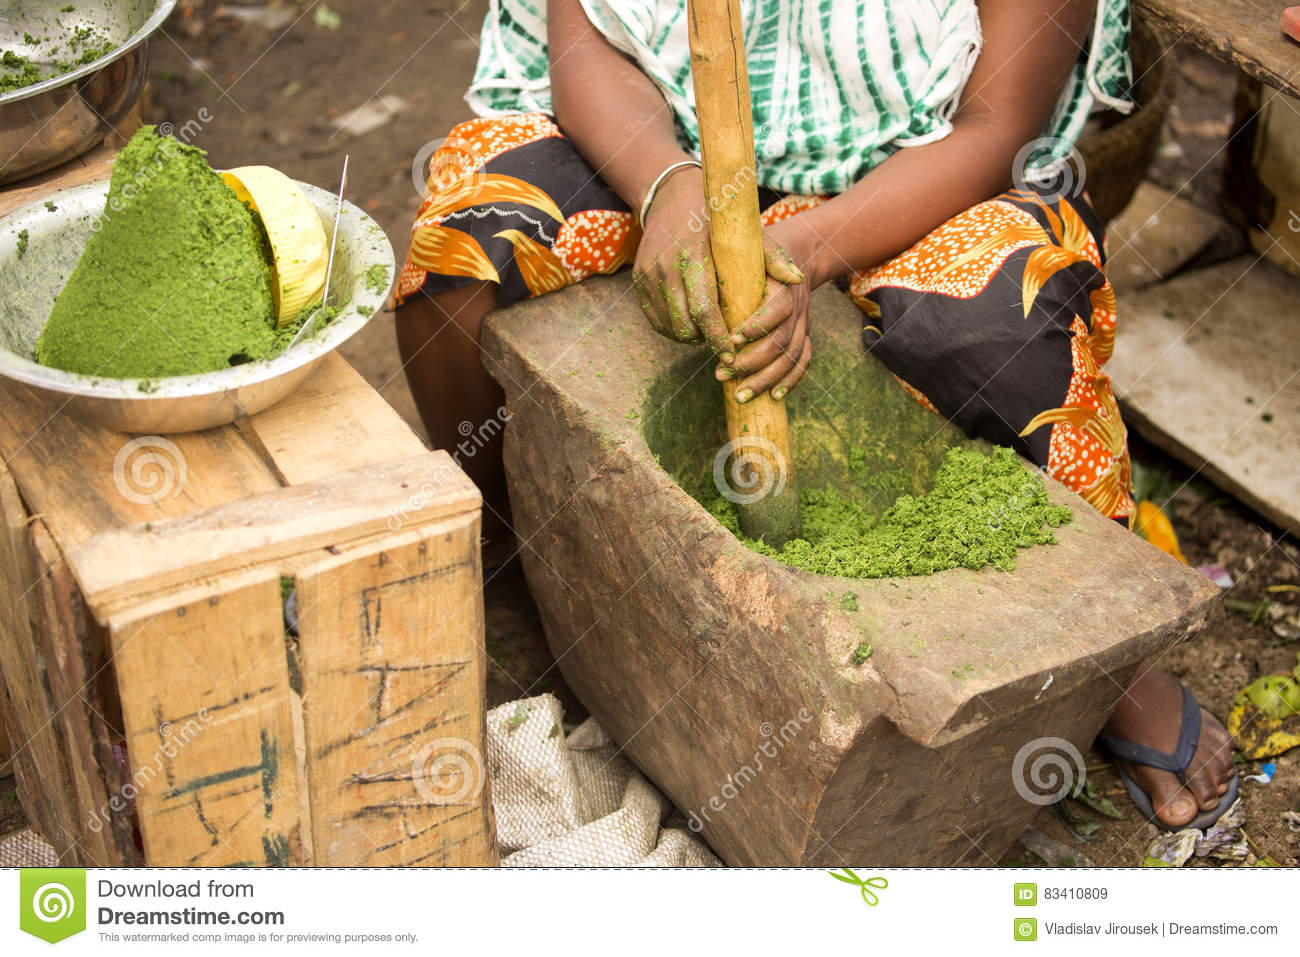 Download Woman At The Market To Crush Them In The Primitive Tools Of Spices, Nosi Be, Madagascar Stock Image - Image of traditional, natural: 83410809